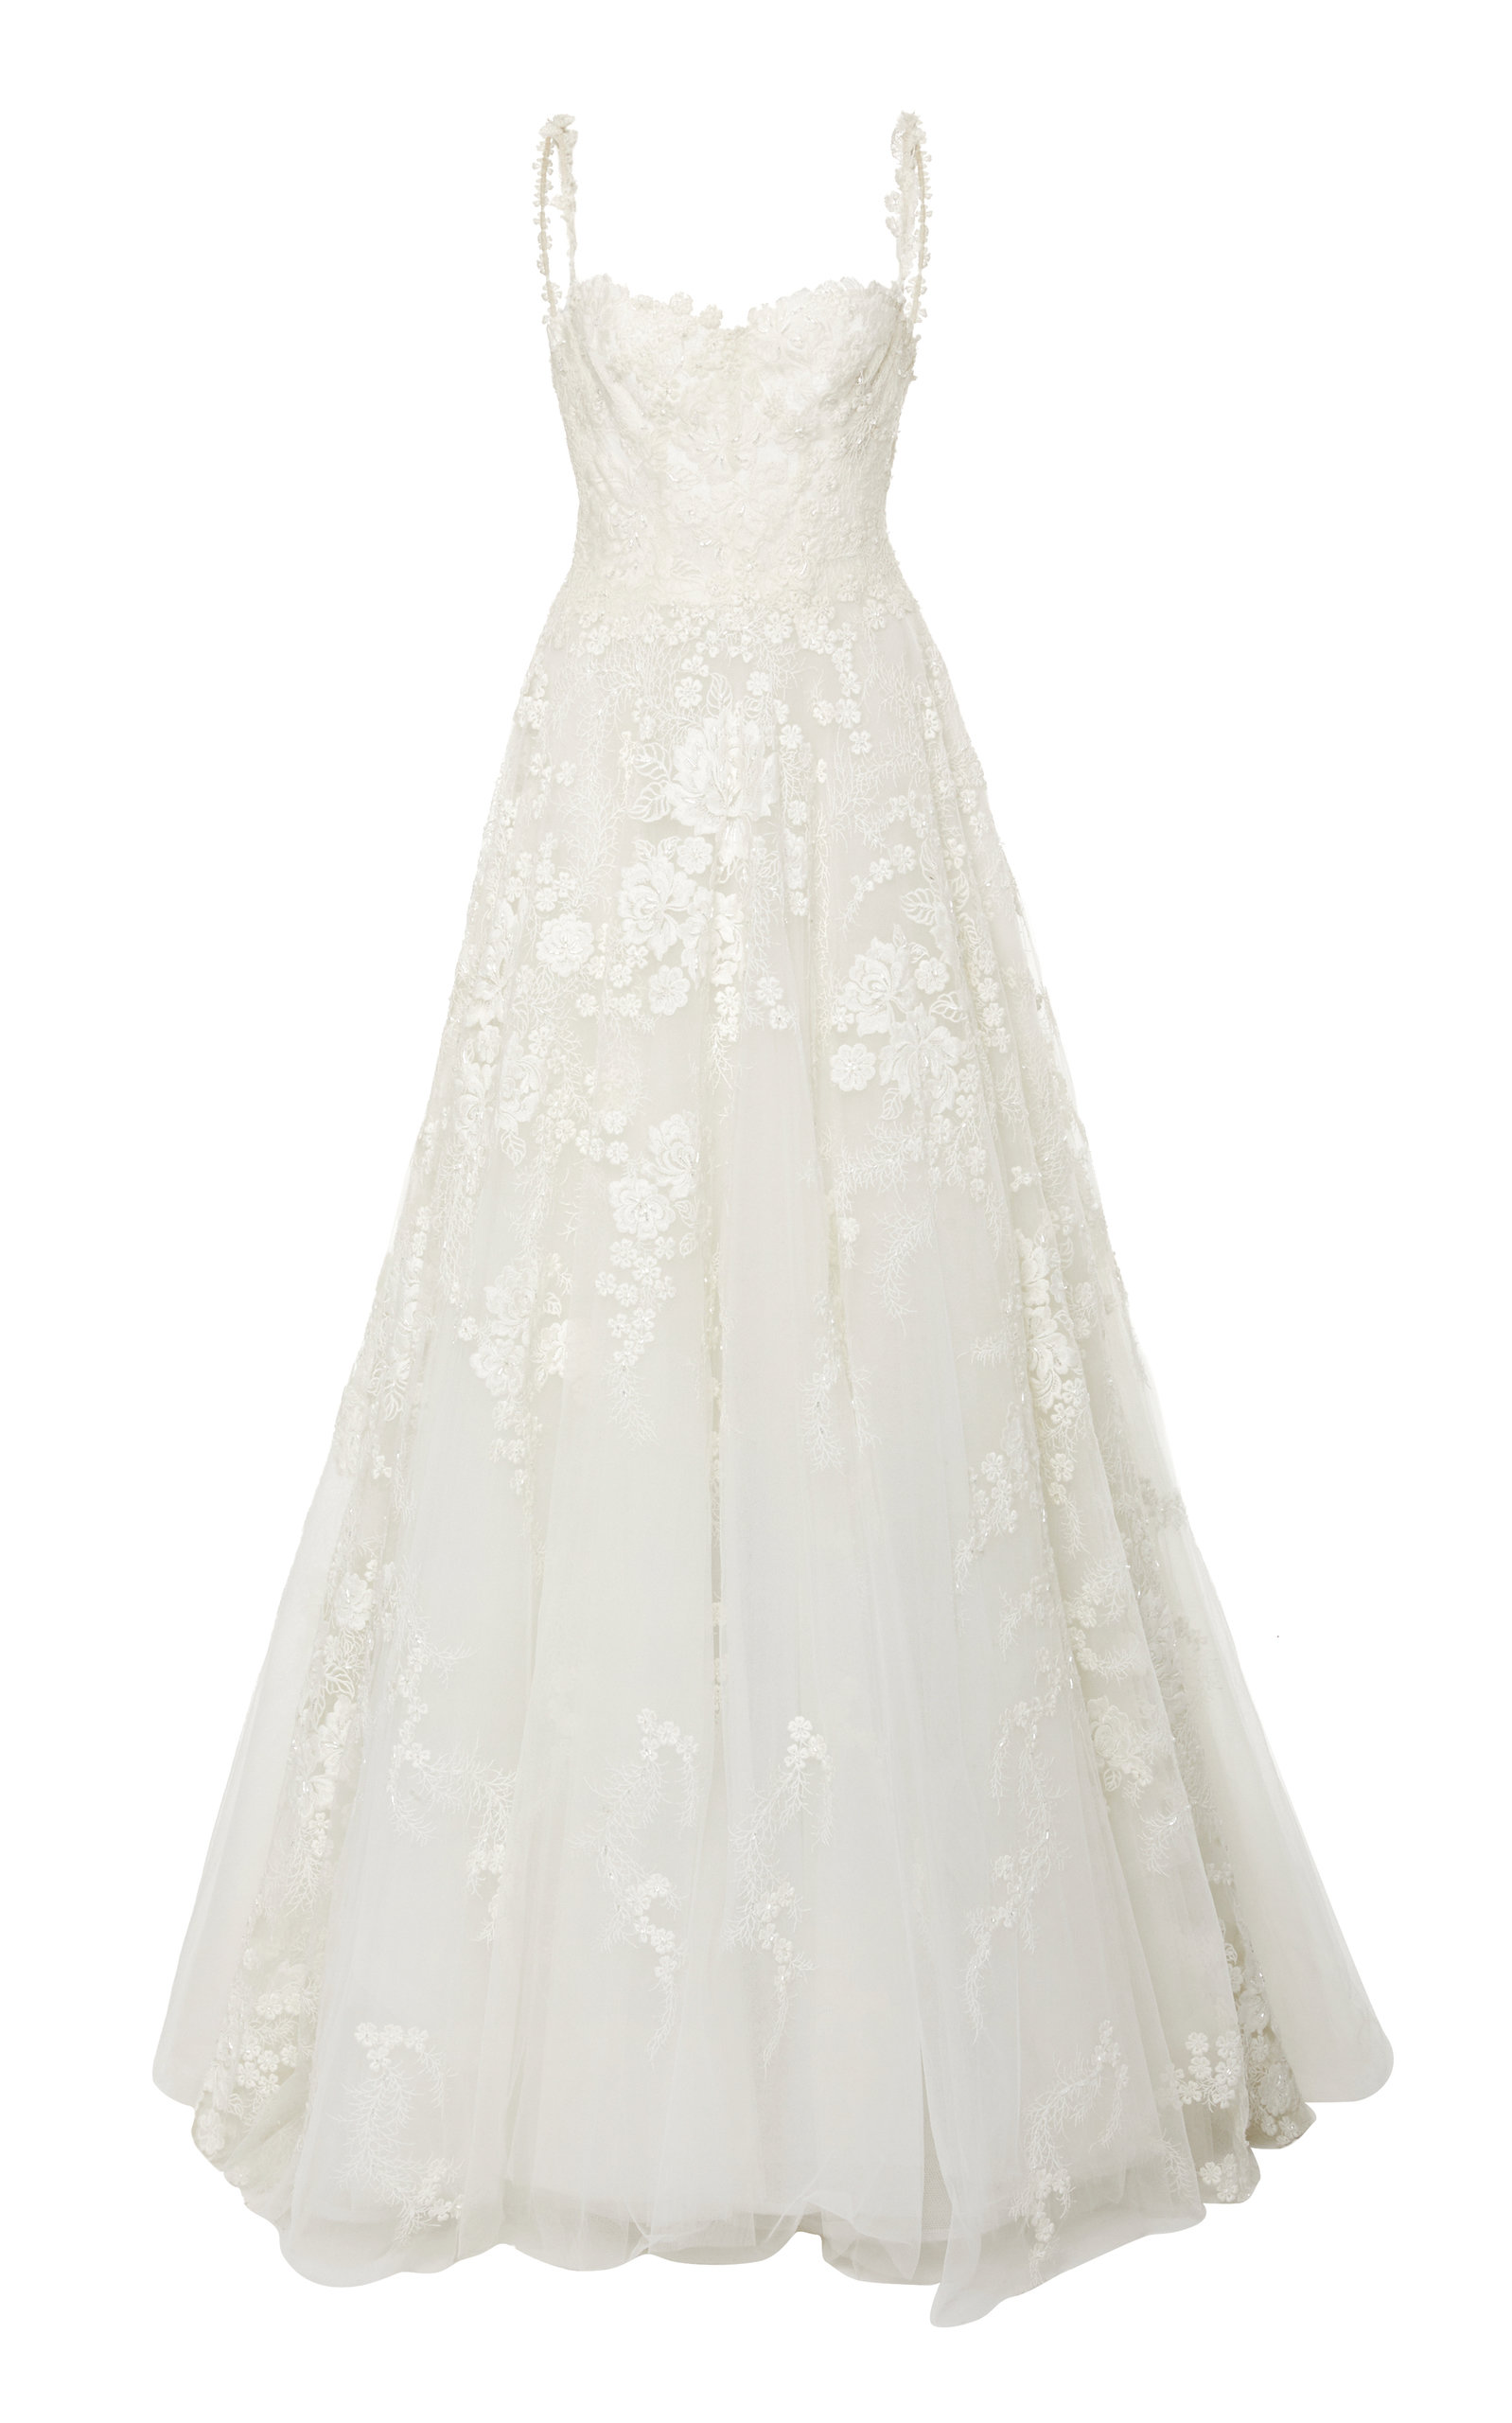 ISABELLE ARMSTRONG Luna Floral Embroidered Tulle Ballgown in White